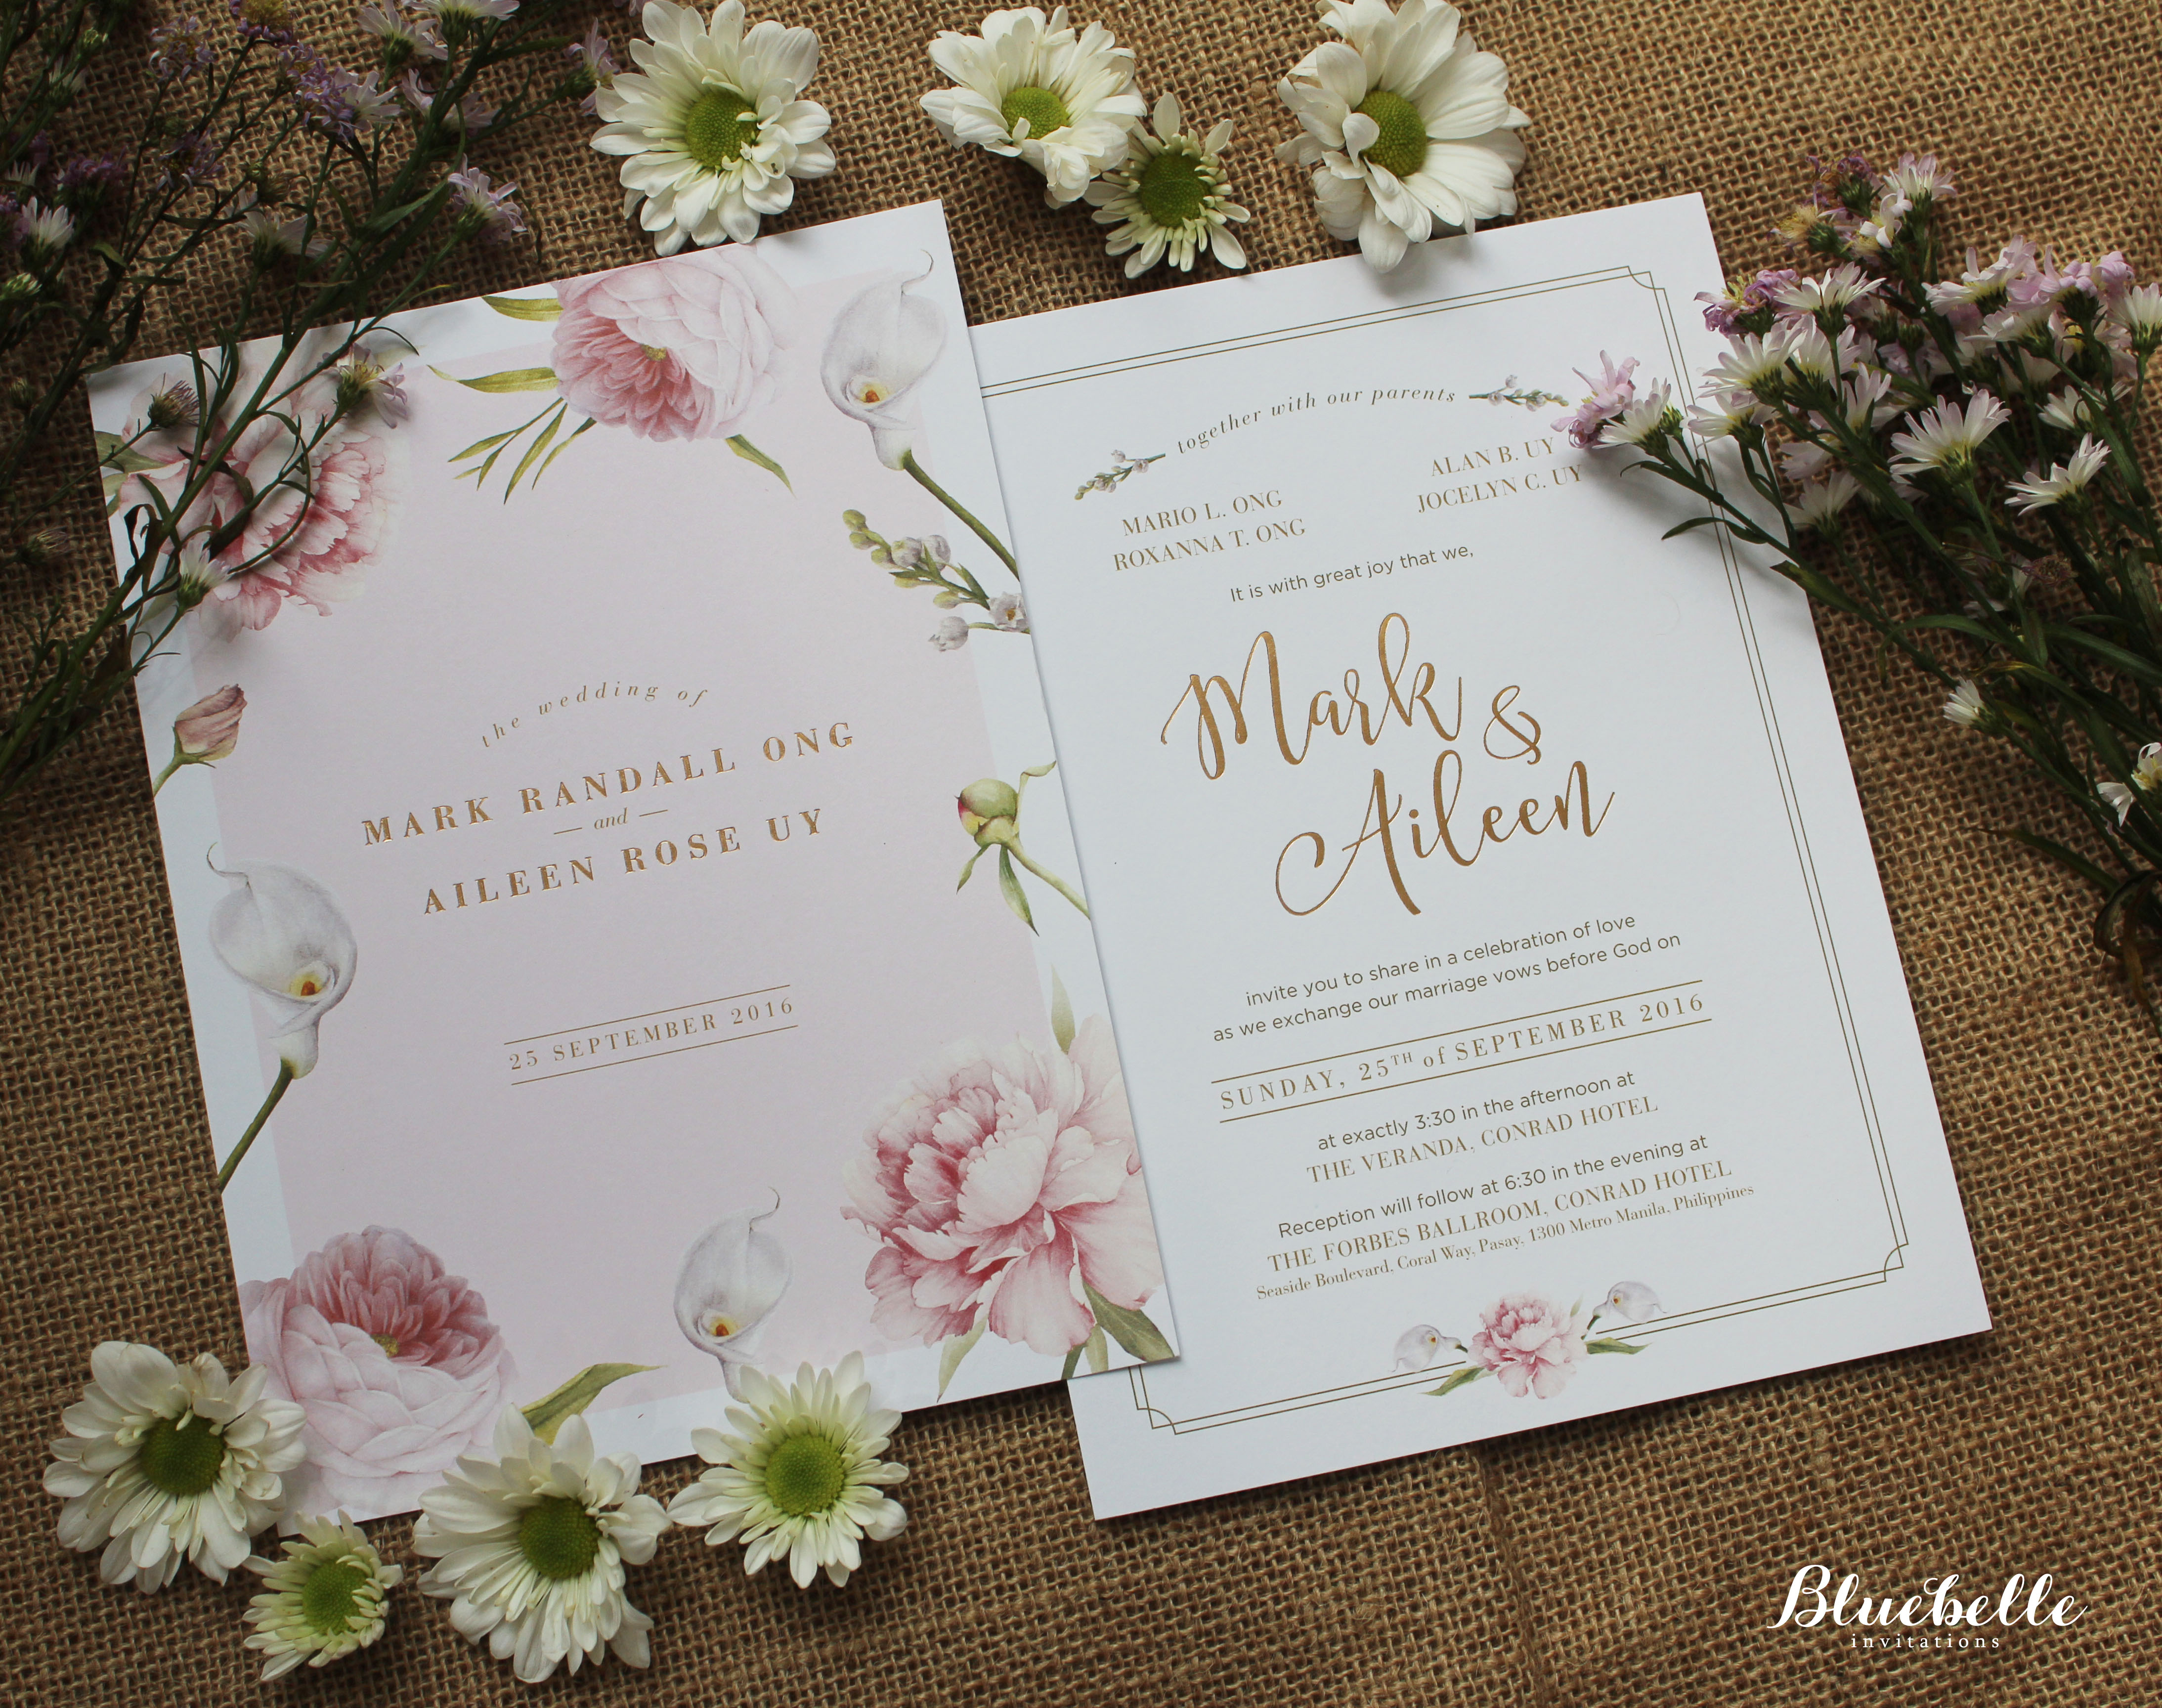 Mark aileen rose quartz floral invitation by bluebelle mark aileen rose quartz floral invitation by bluebelle invitations bridestory stopboris Gallery